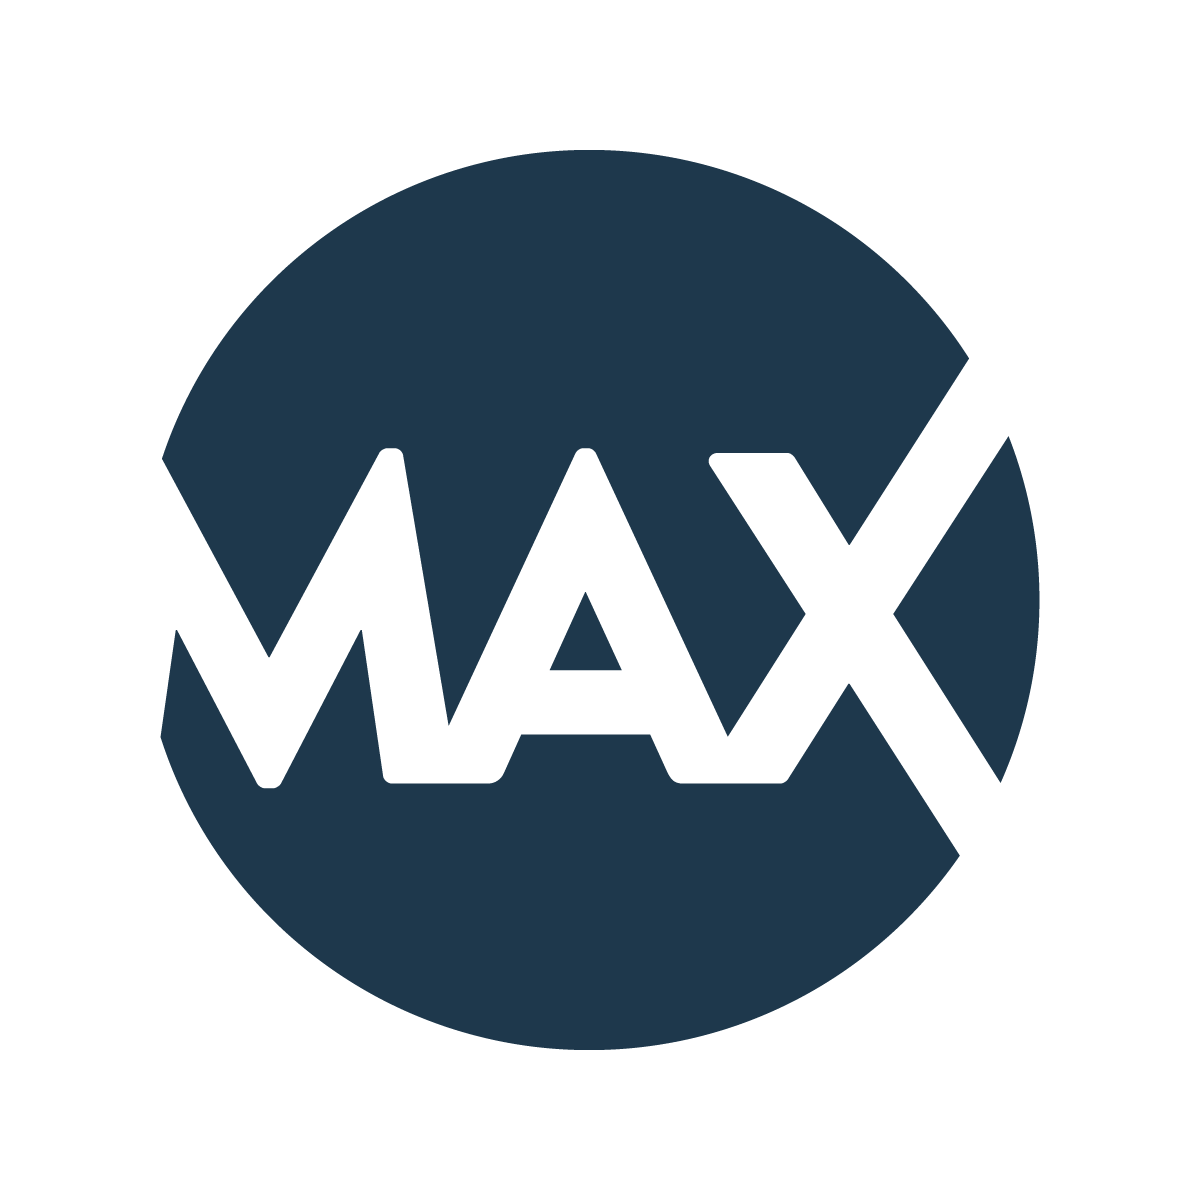 Max Png Free Max Png Transparent Images 99269 Pngio